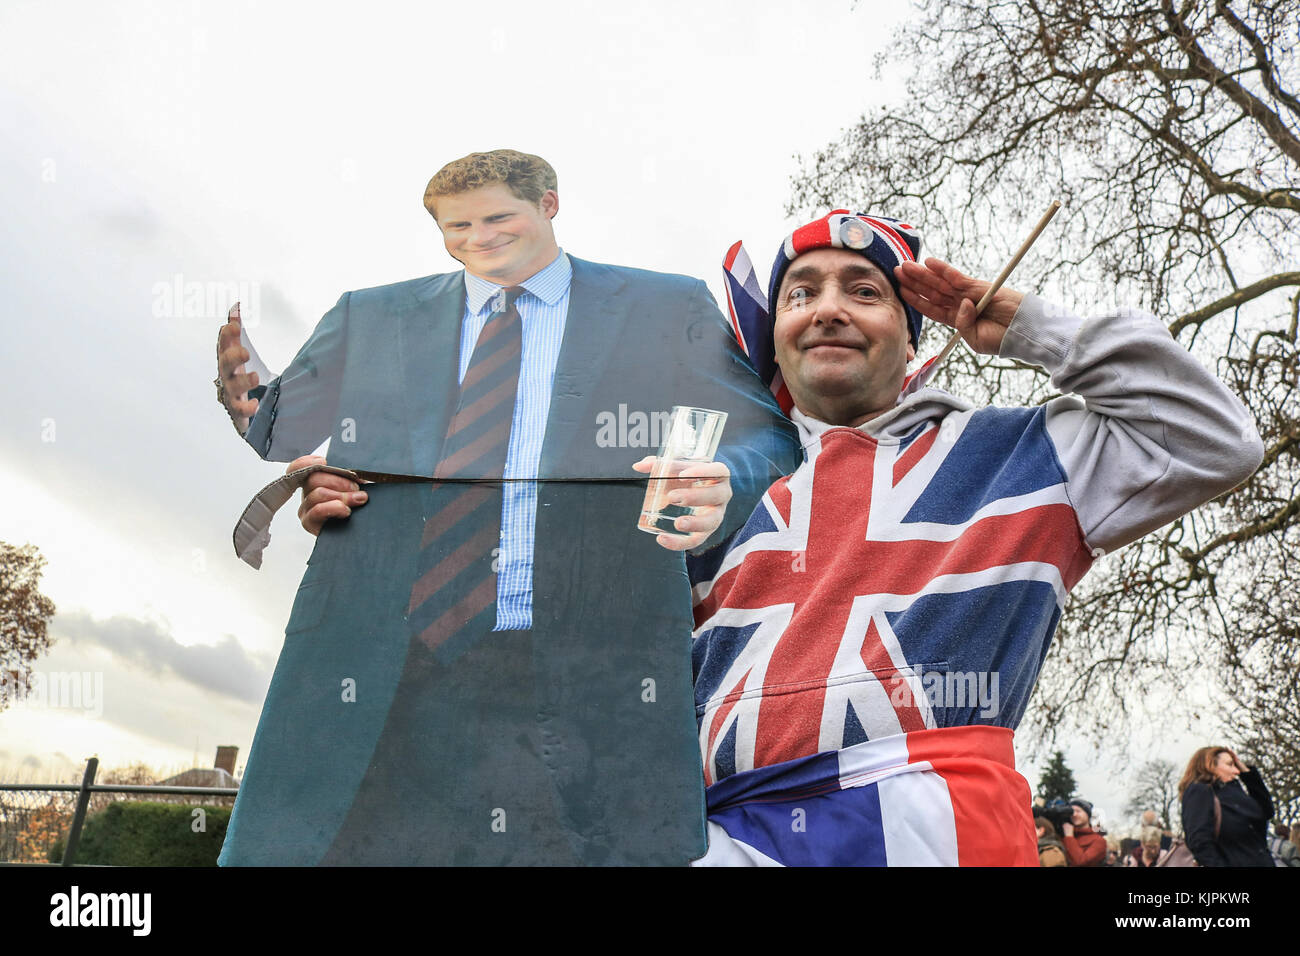 London, UK. 27th Nov, 2017. Royal well-wisher John Loughrey outside Kensington Palace with a cardboard cutout of Stock Photo